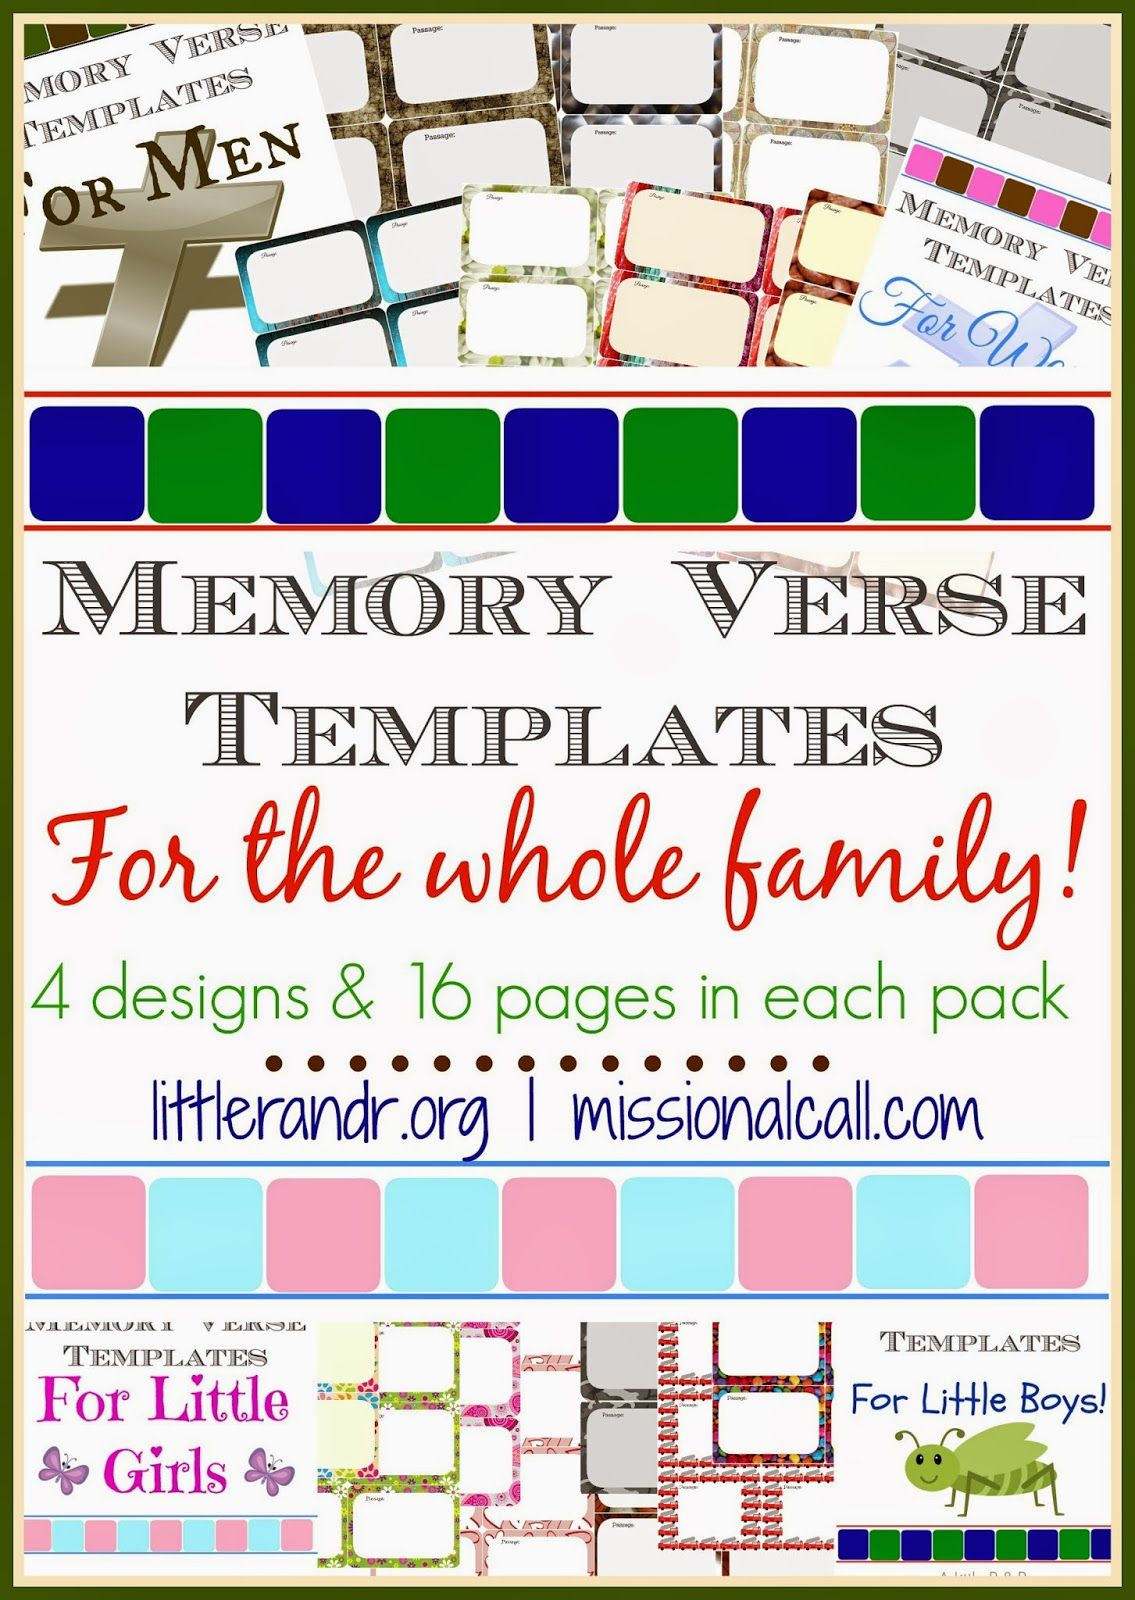 Memory Verse Templates For The Whole Family